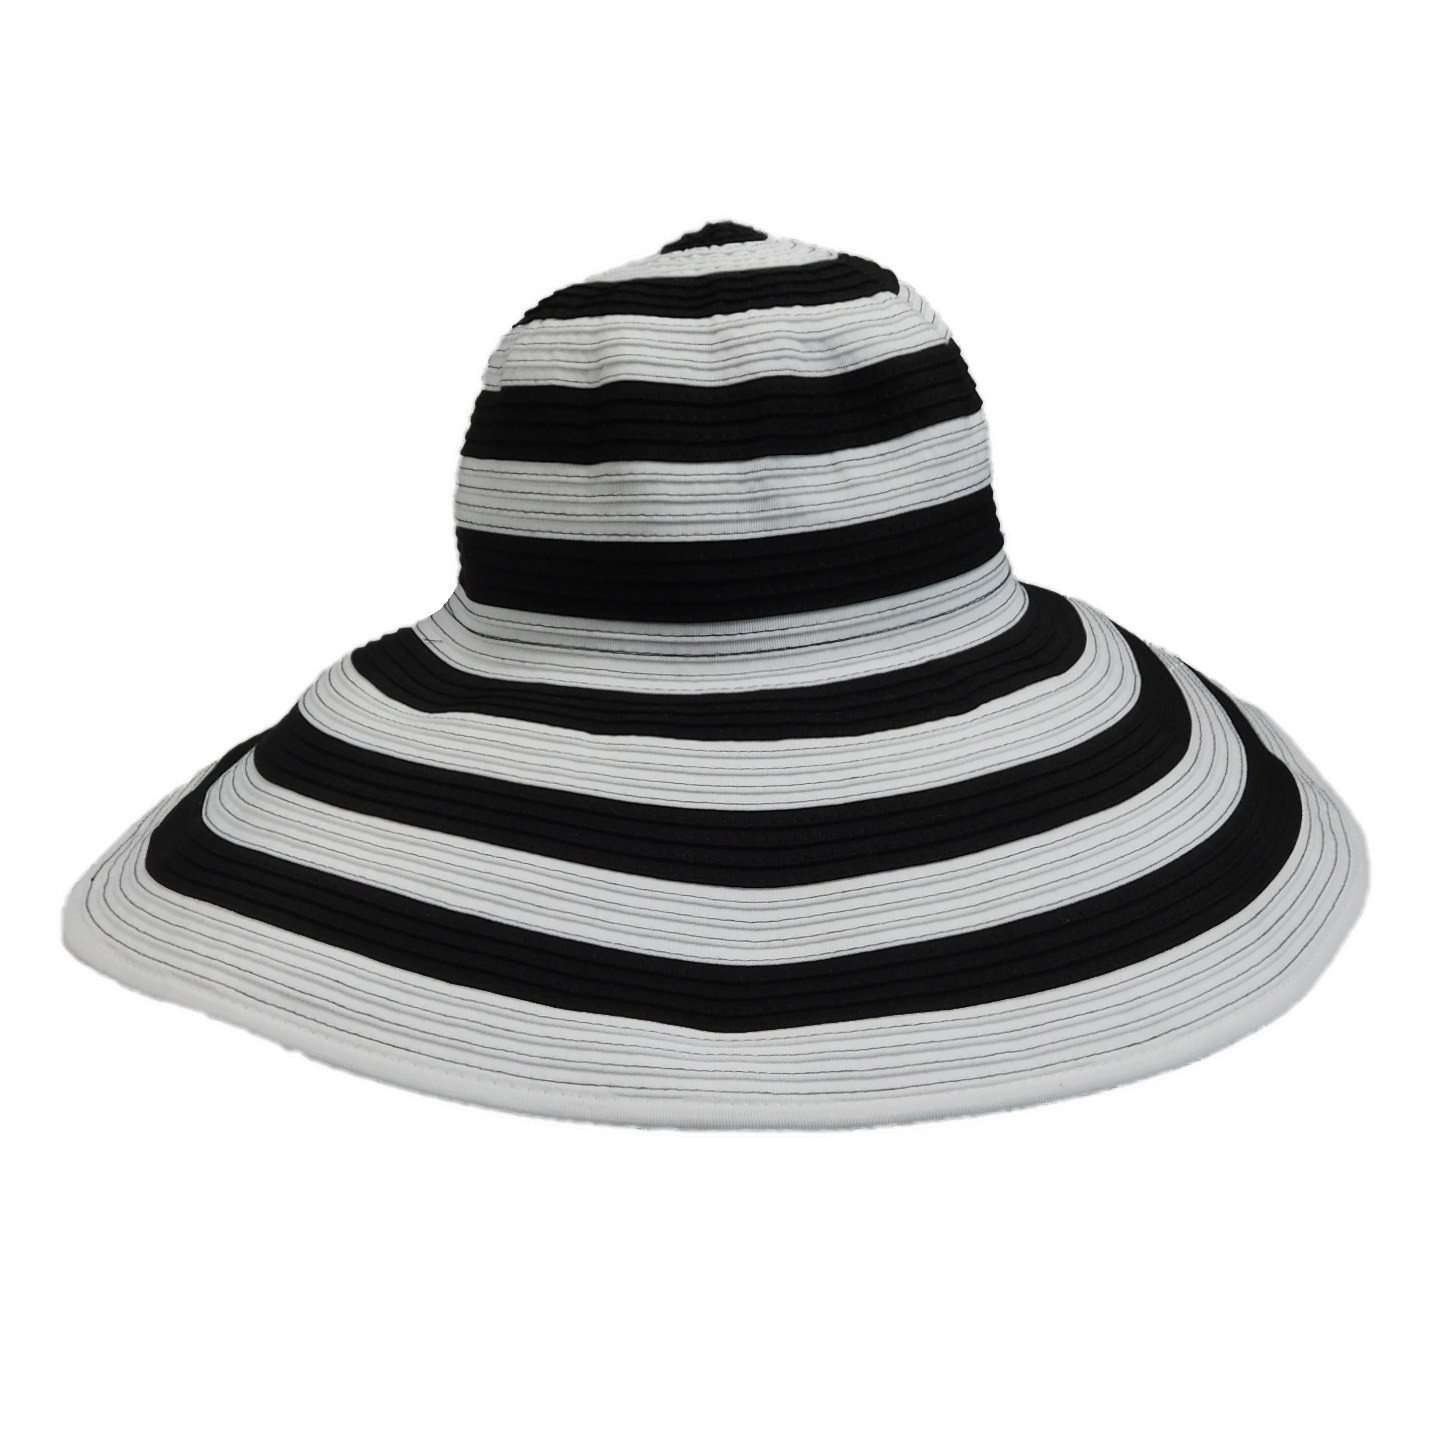 Scala Large Brim Black and White Hat - SetarTrading Hats